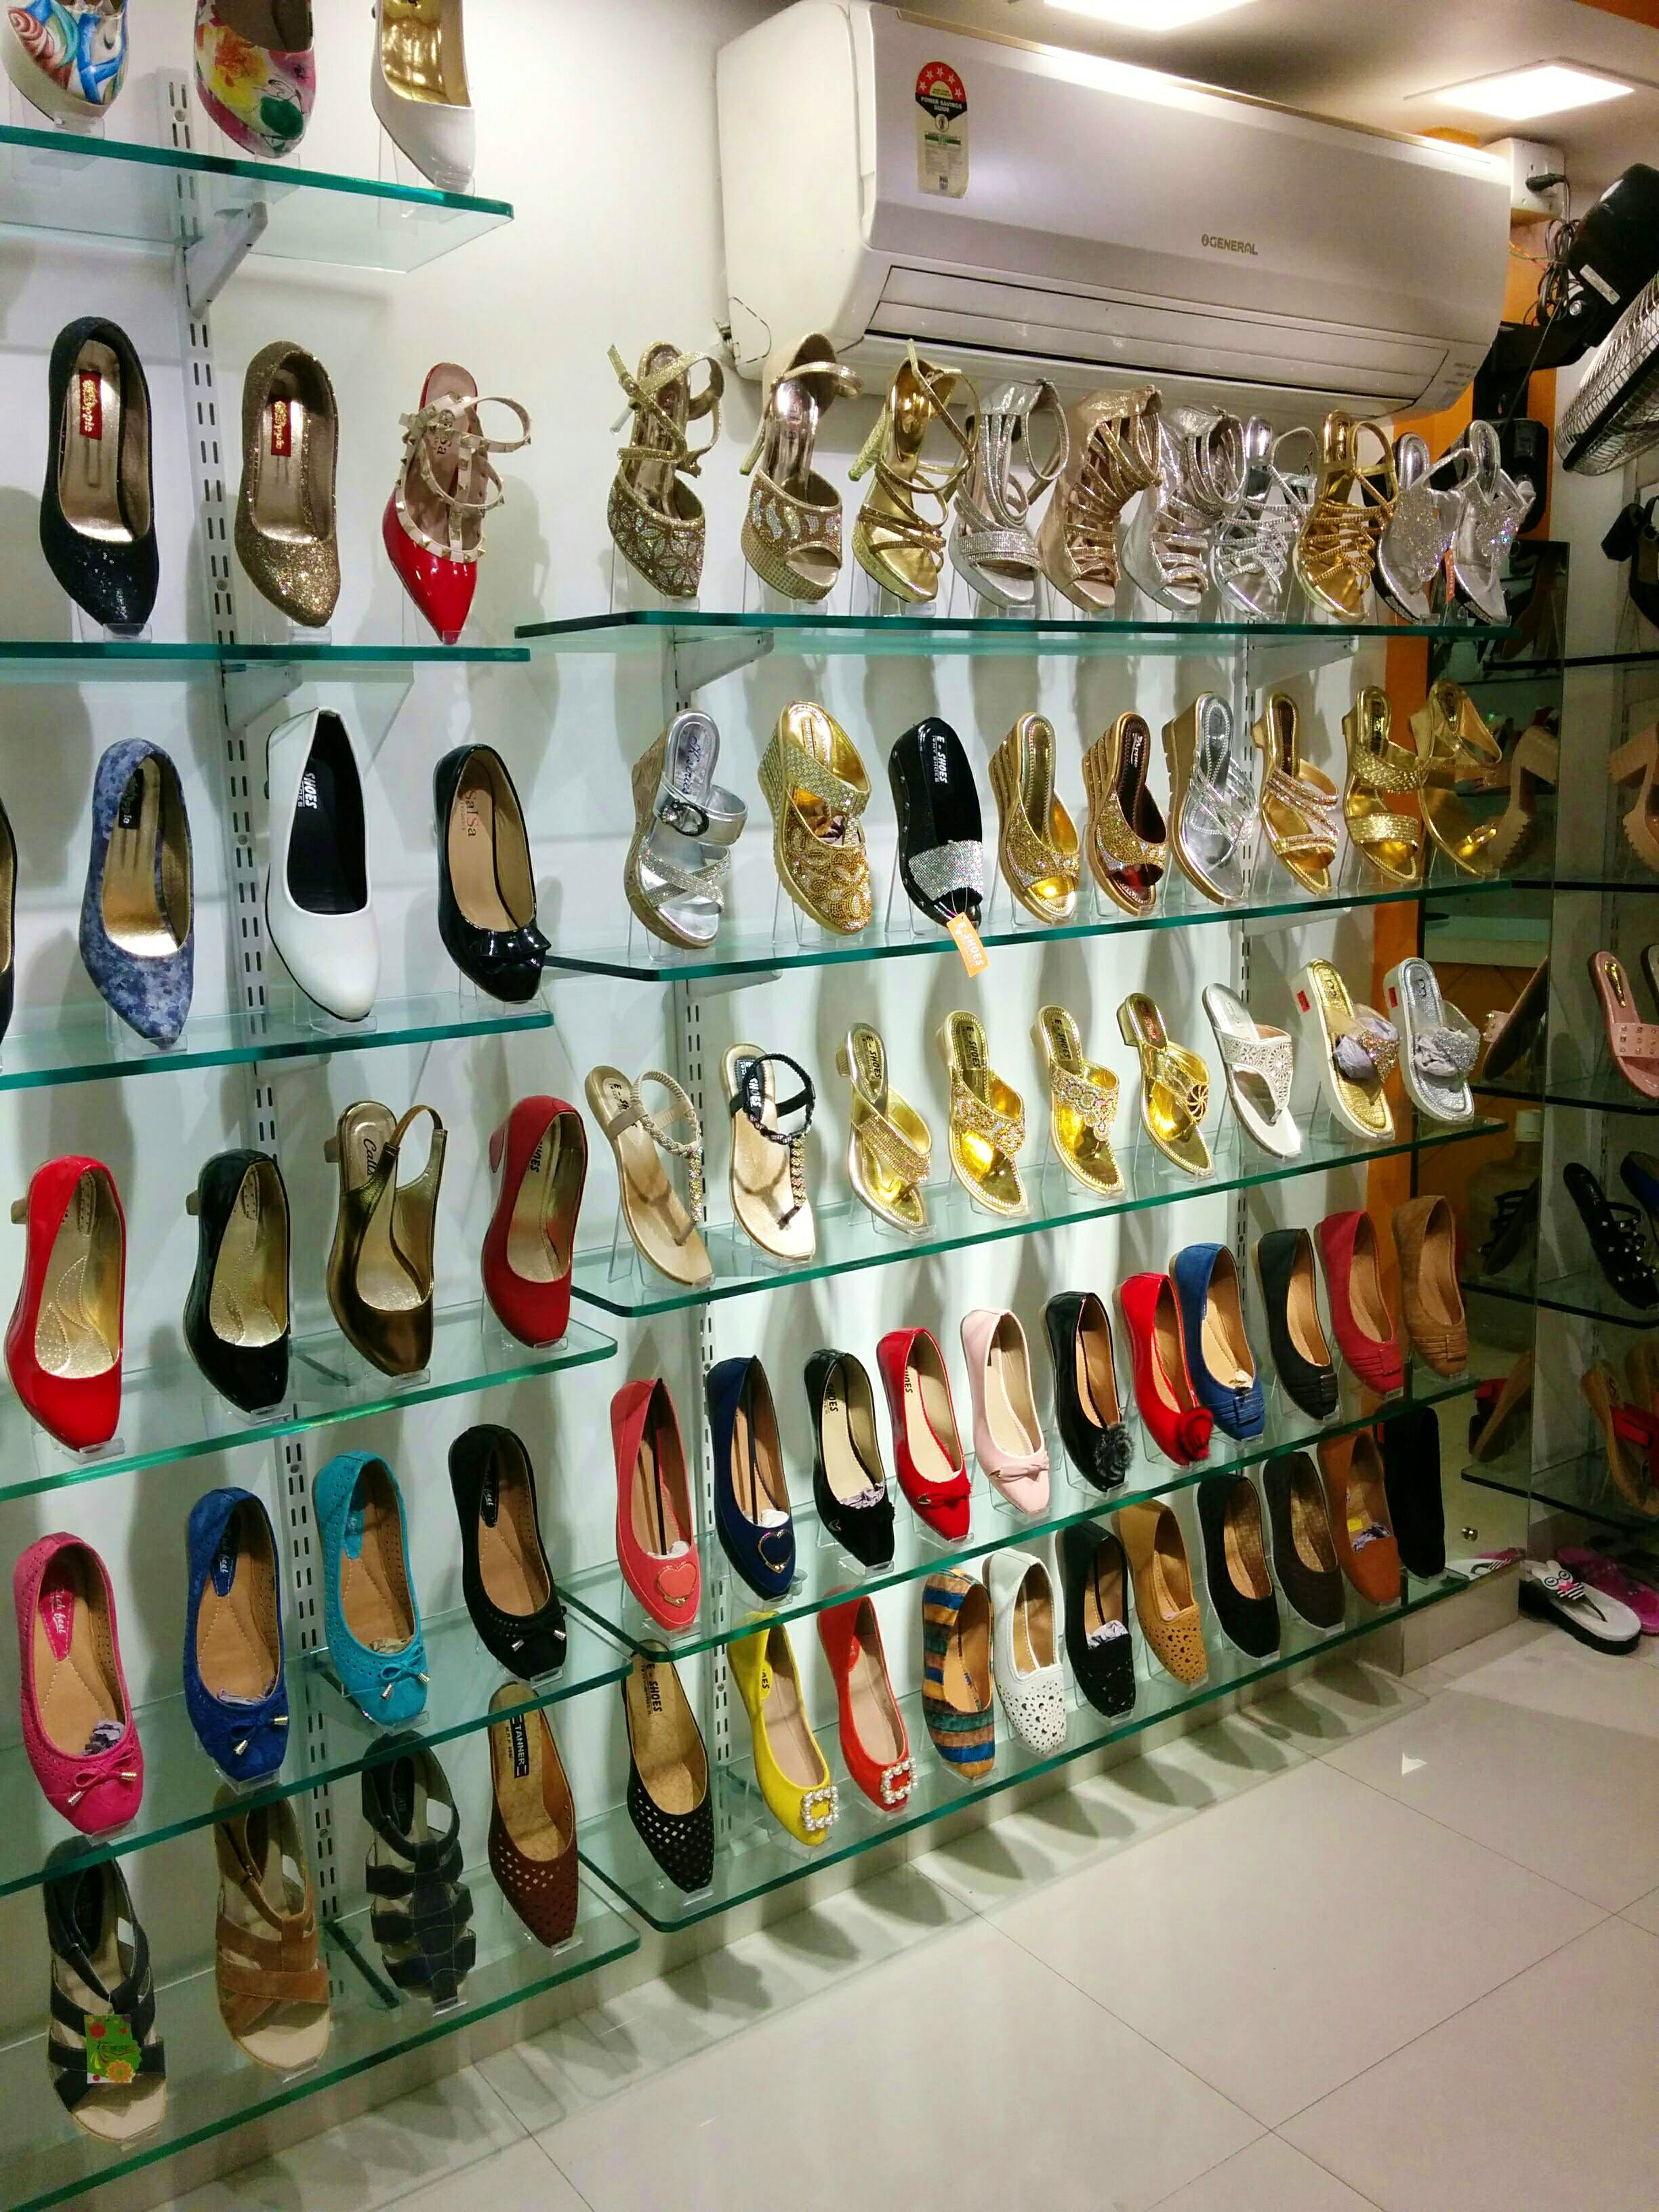 Footwear,Collection,Shoe store,Shoe,Display case,Outlet store,Room,Boutique,Fashion accessory,Athletic shoe